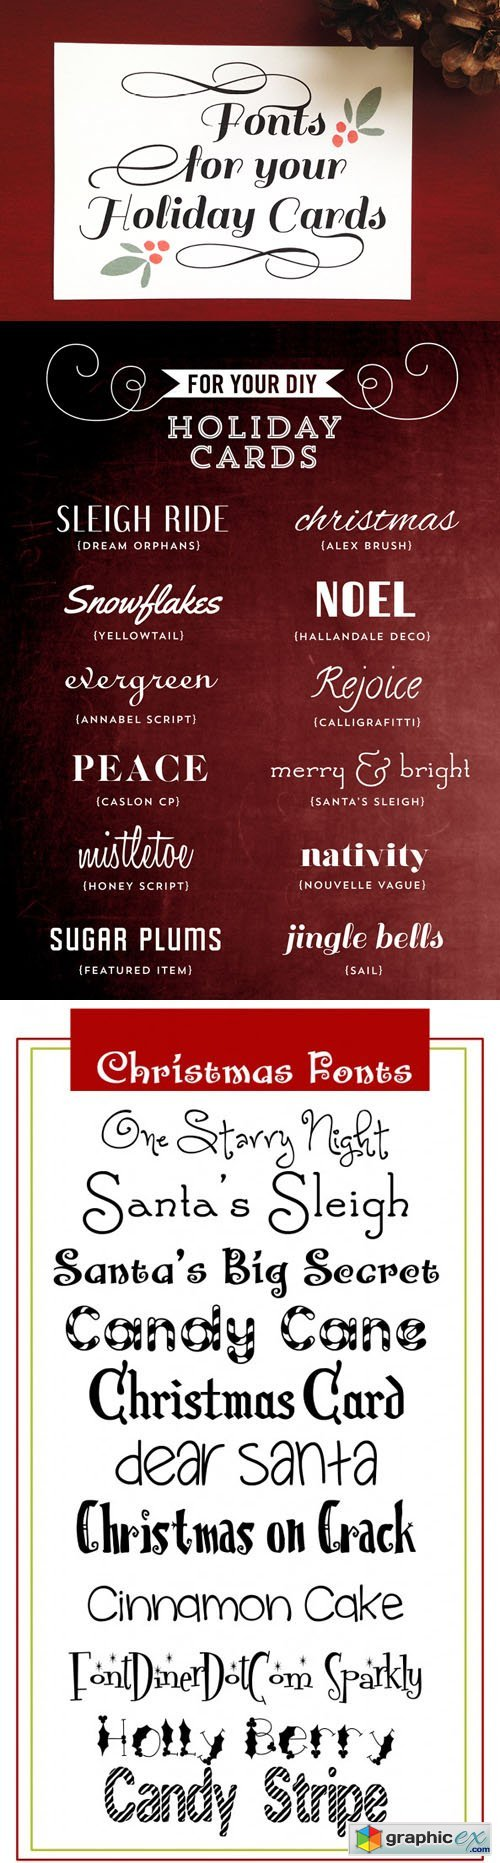 22 Christmas Fonts for Holiday Cards